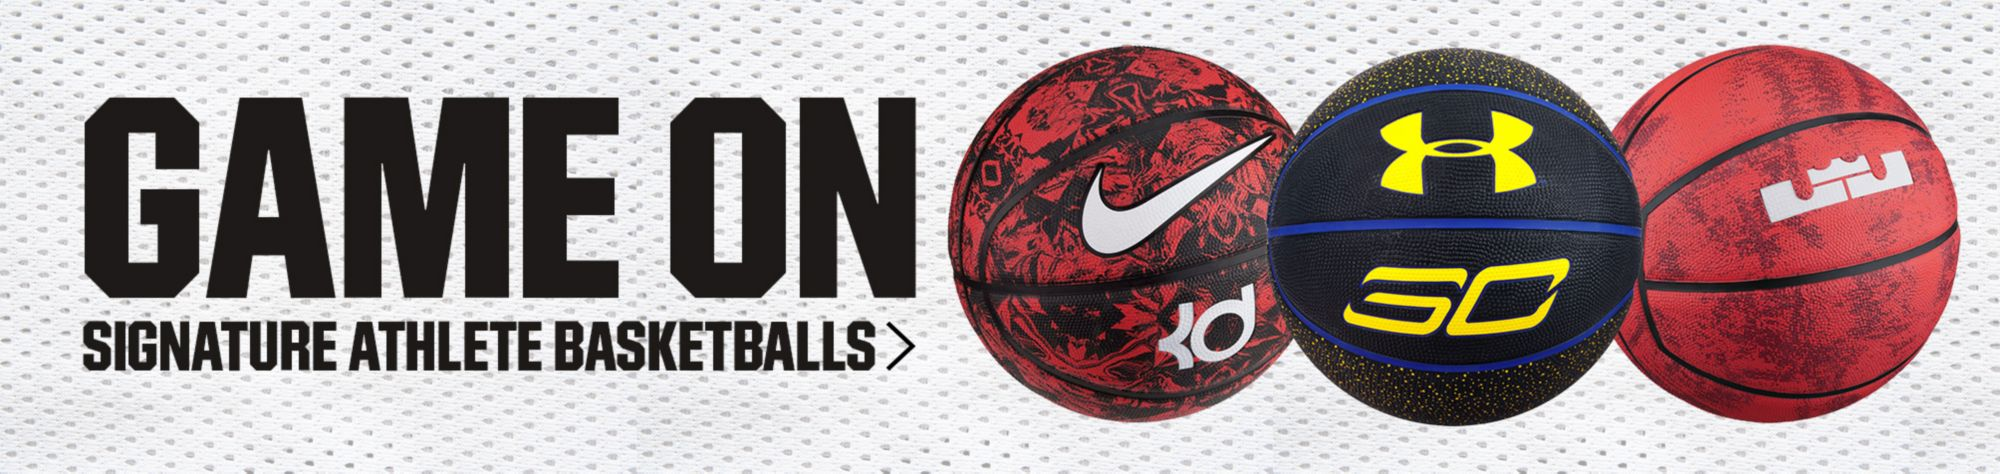 Game On - Signature Athlete BasketBalls